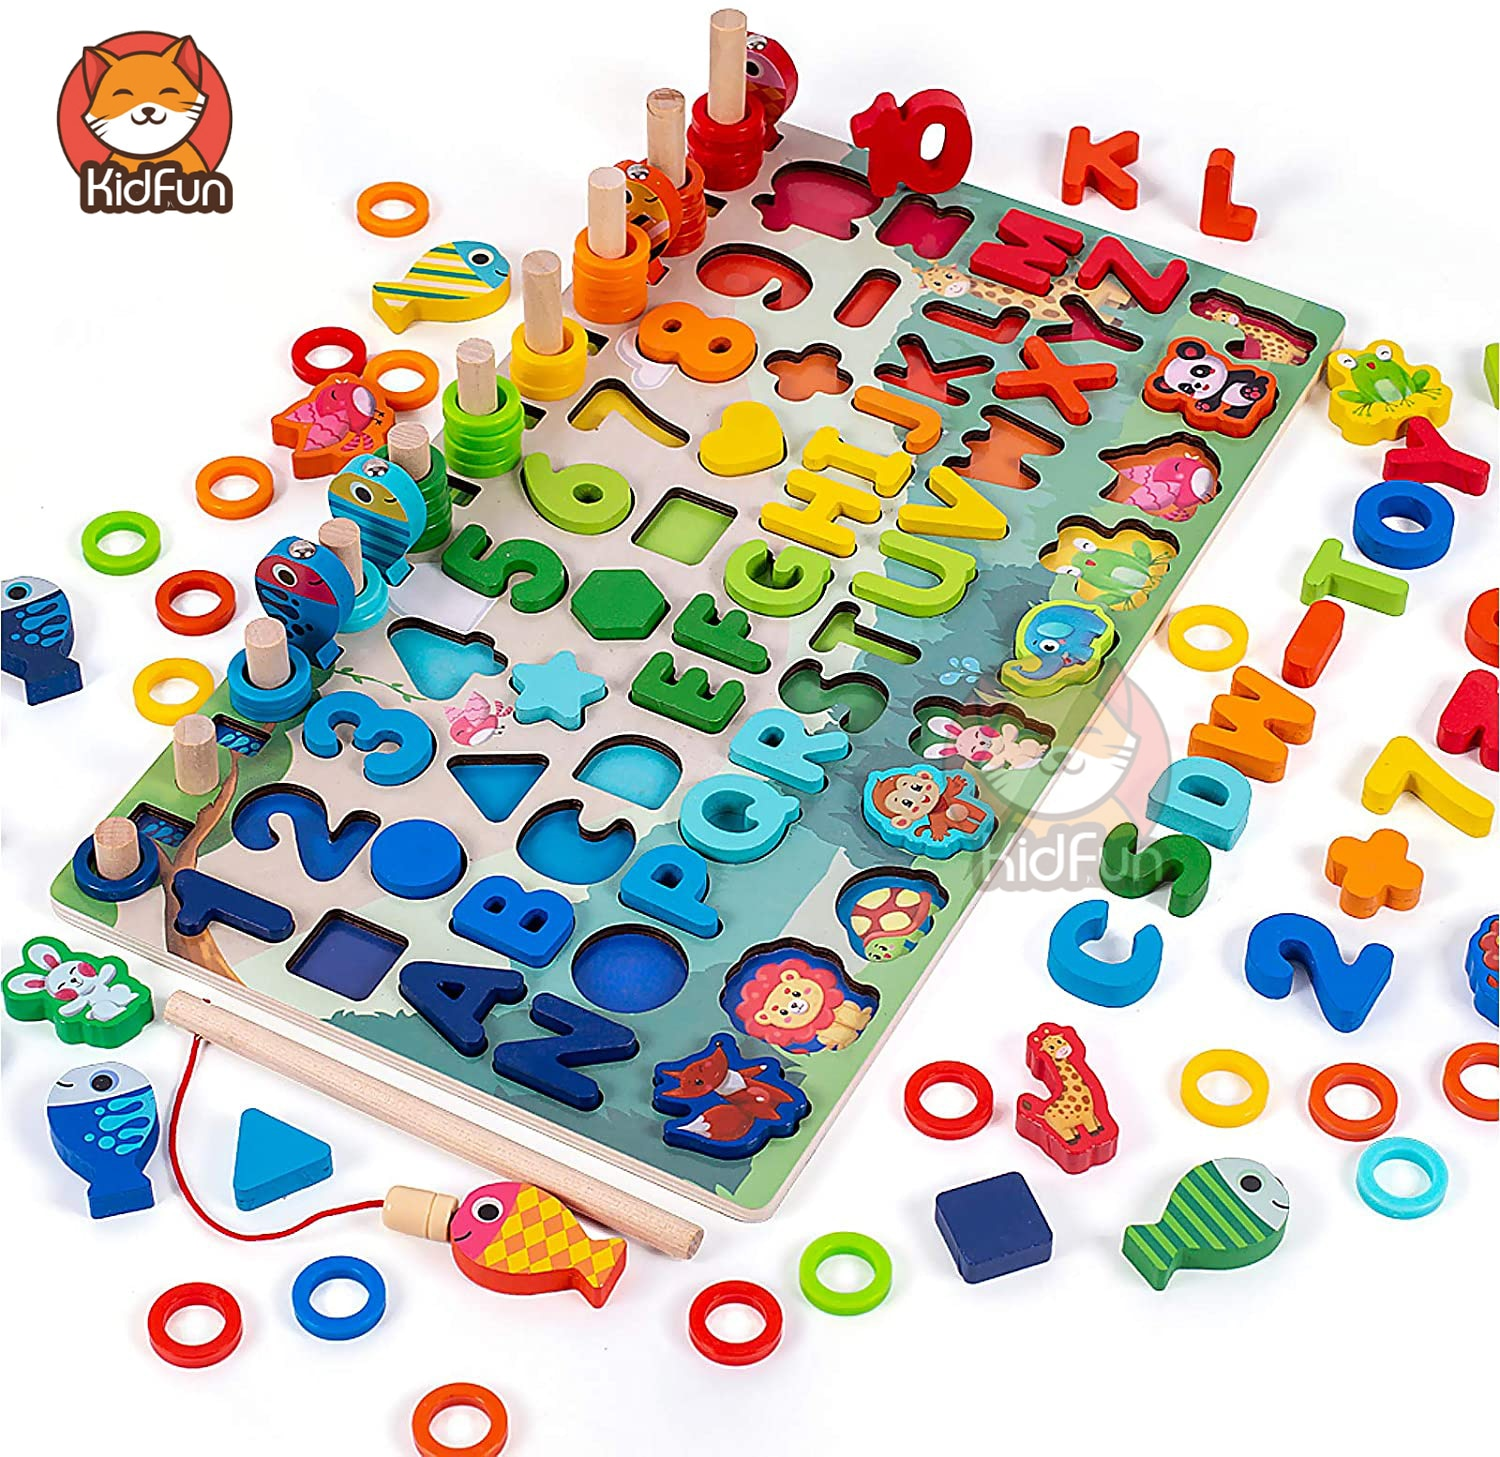 Montessori Toys Educational Wooden Toys for Kids Babies Montessori Toys Board Math Fishing Game Montessori Toys for 1 2 3 Years